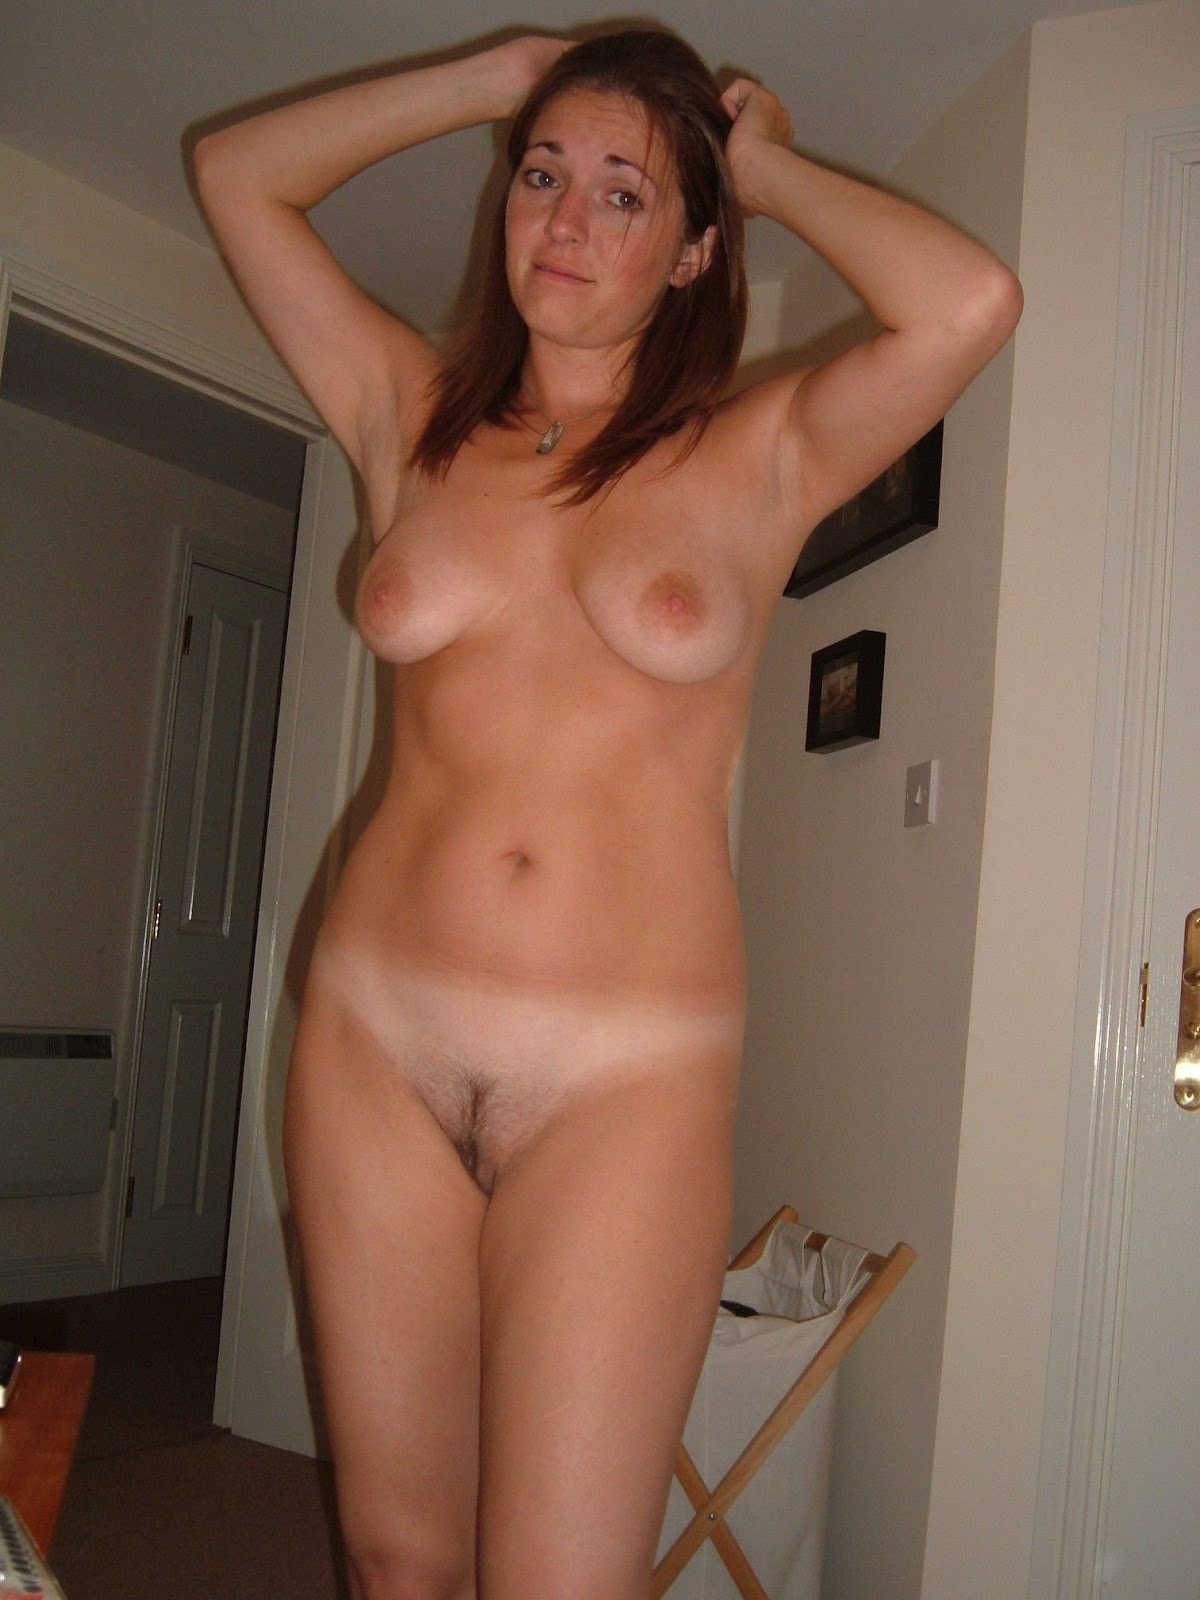 Young nudes pictures